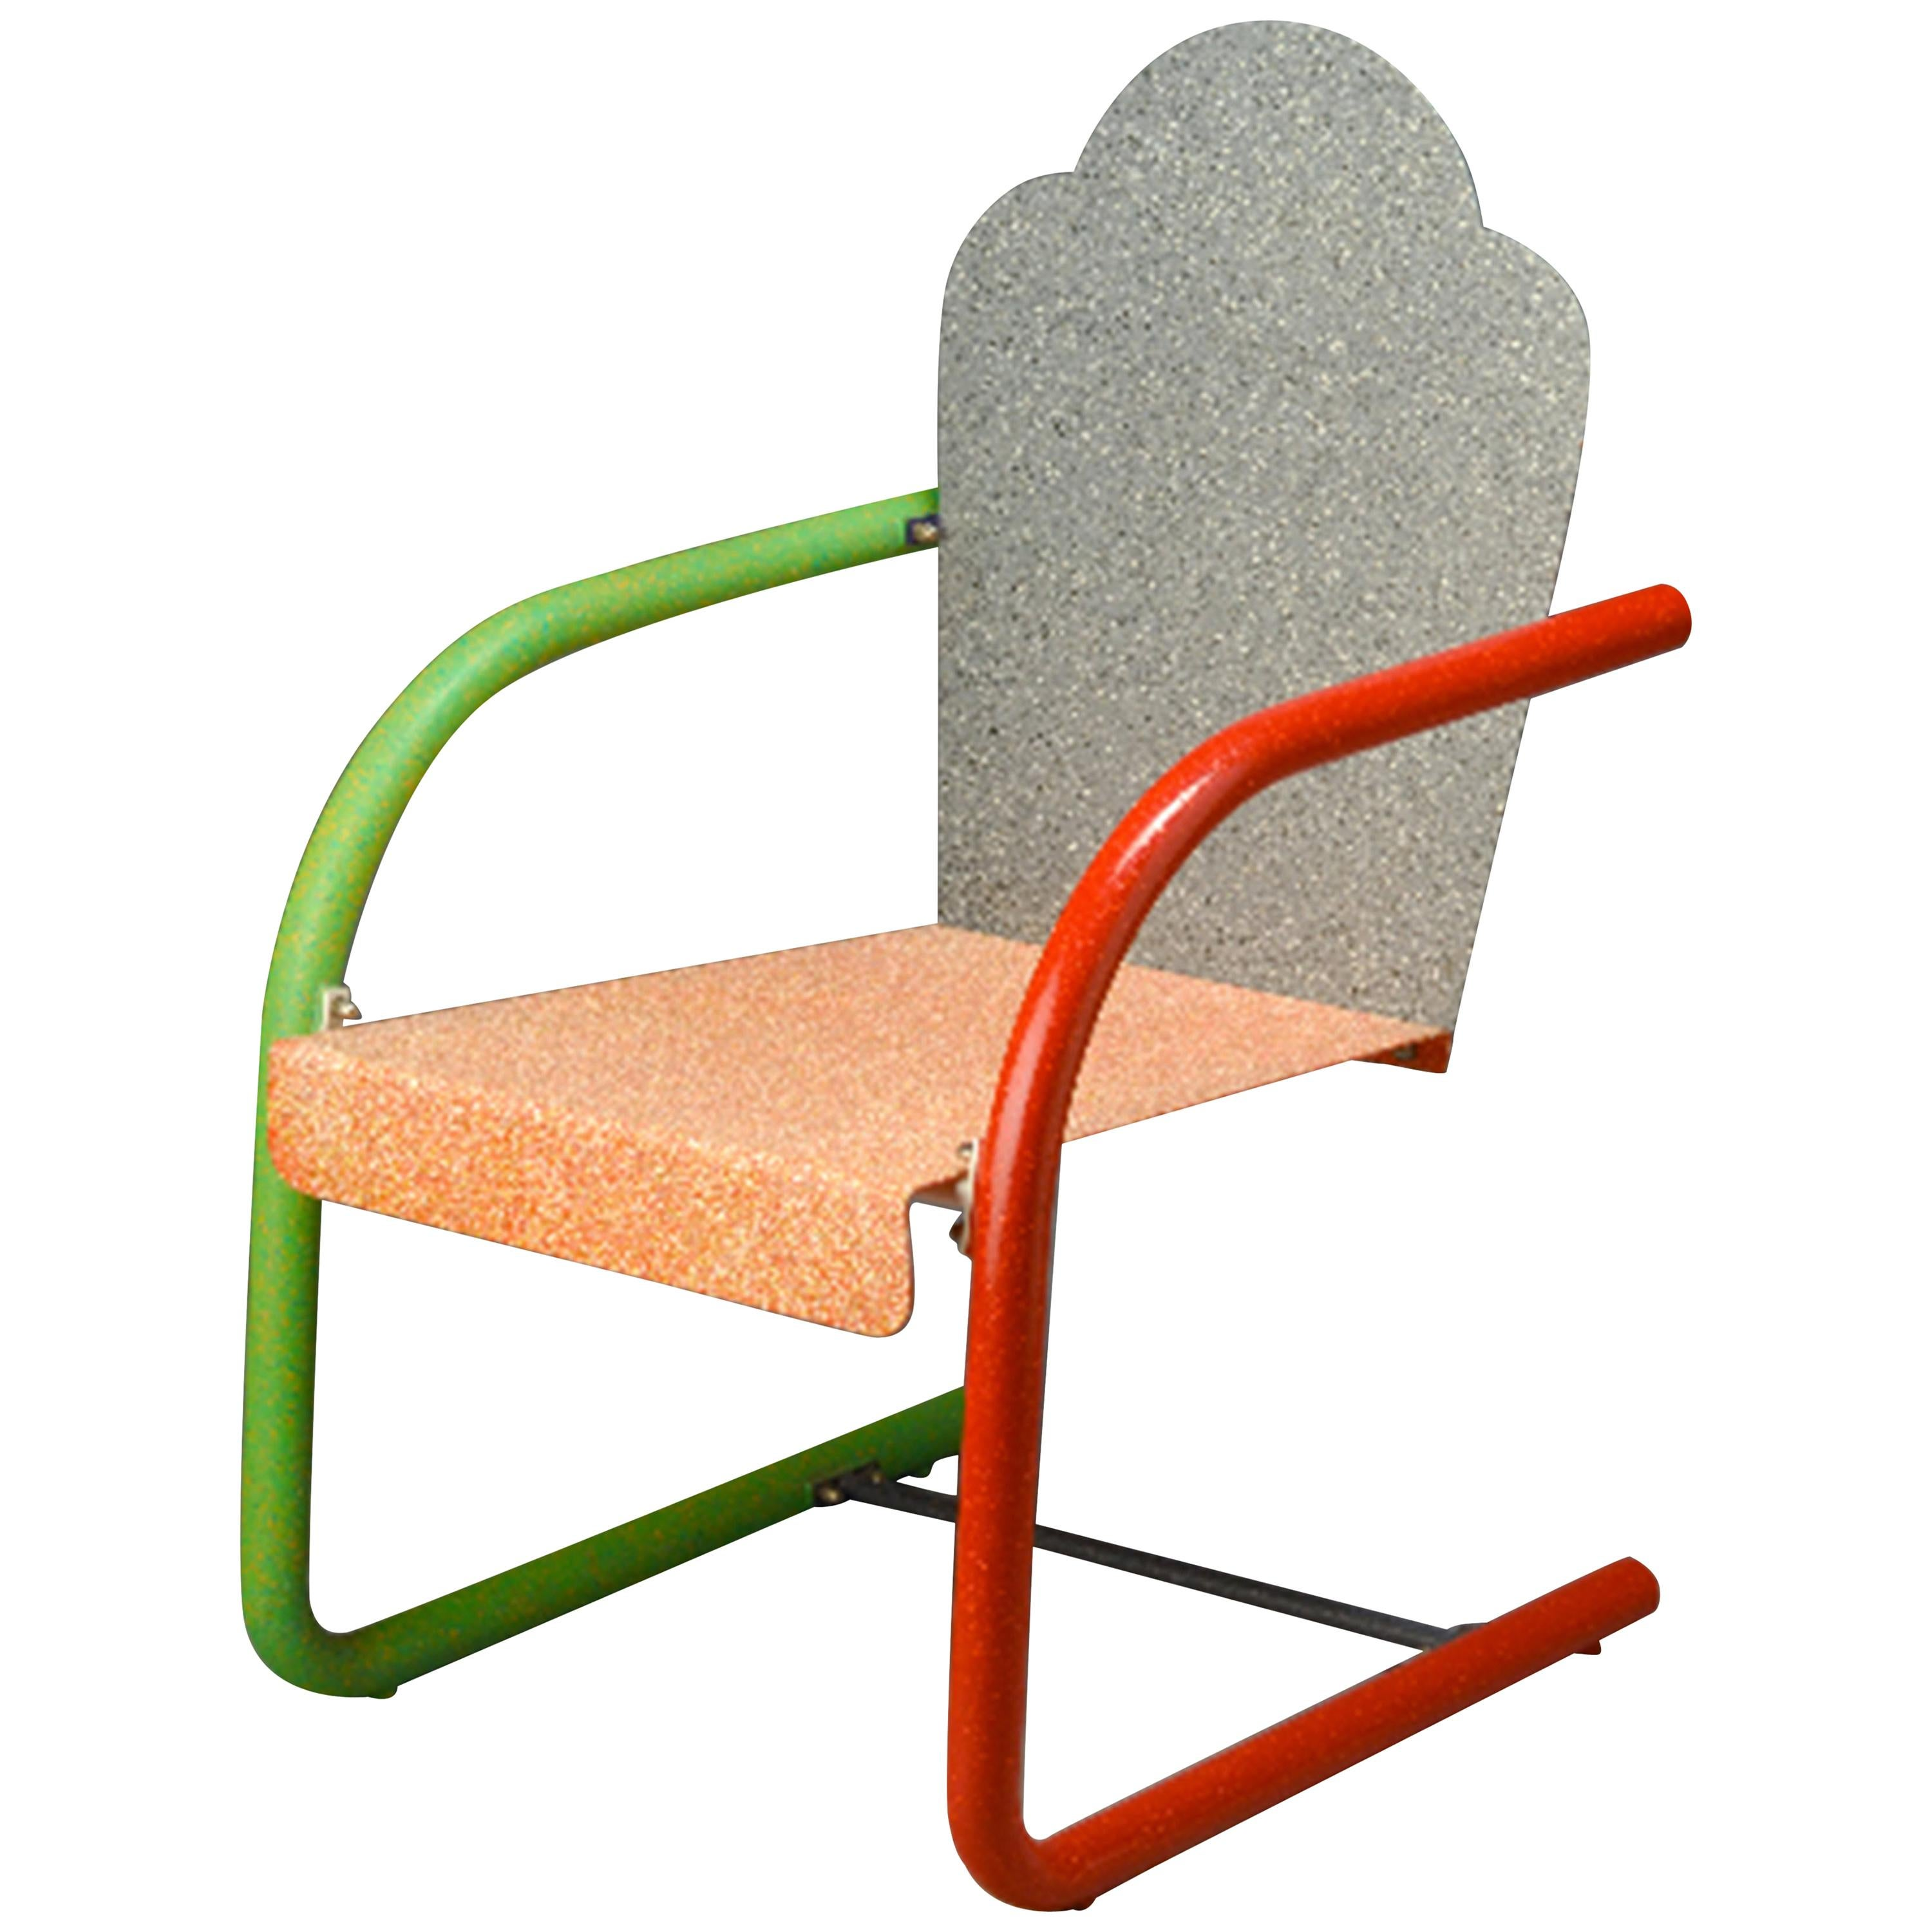 'Universal' Chair 'Pink & Gray' by Peter Shire, 1994